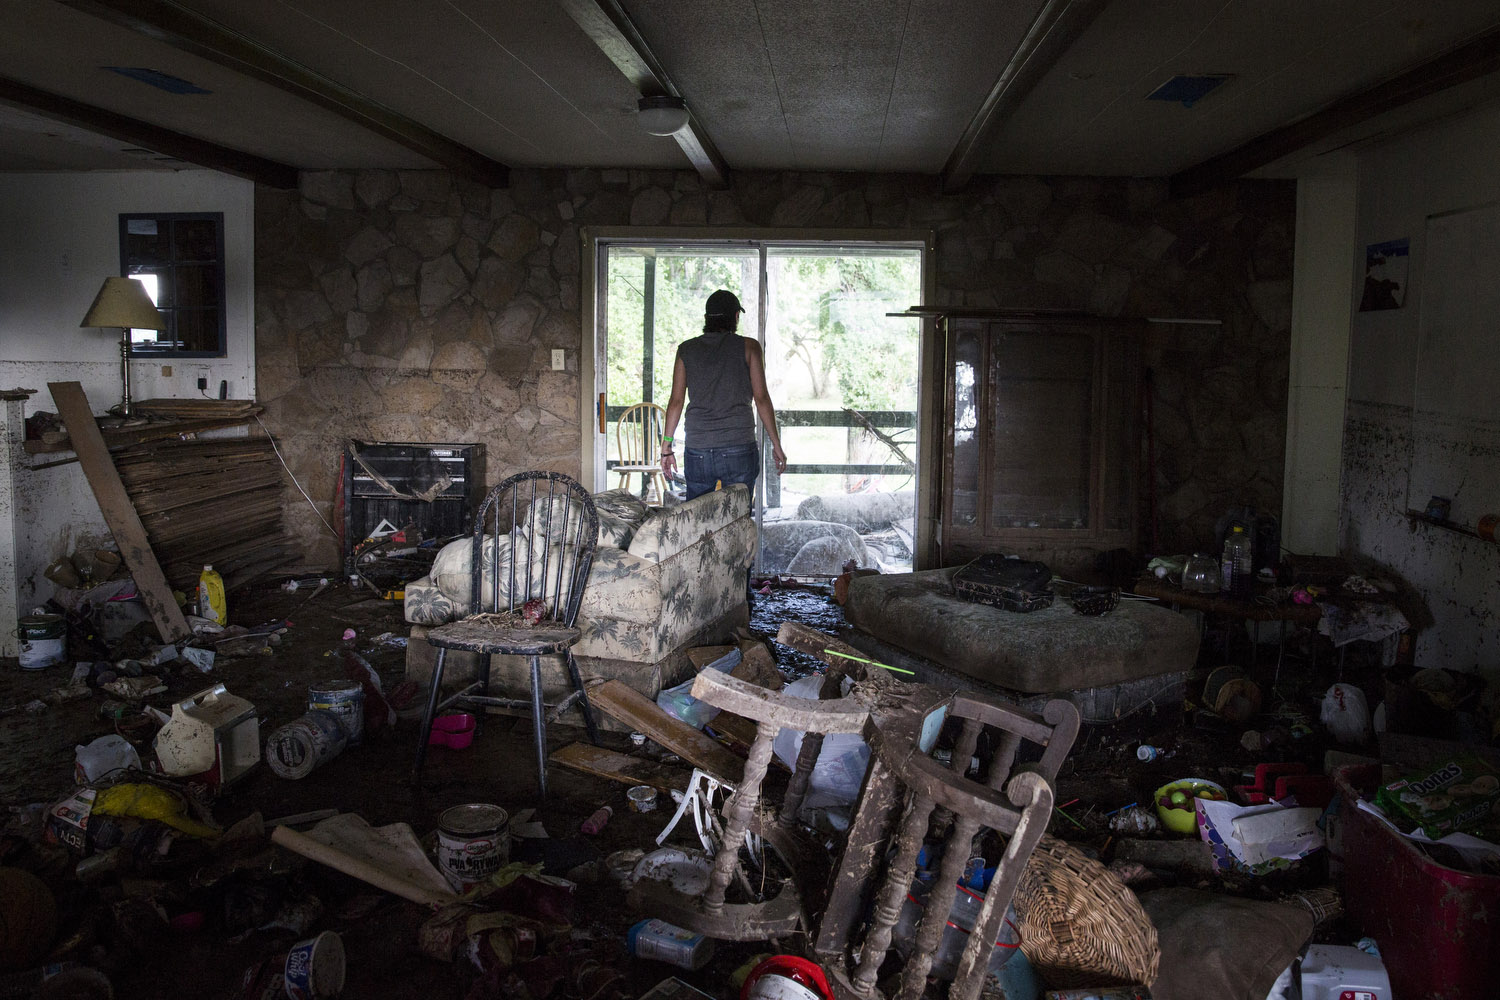 "Glenda Bamberger looks out of the back door of her home in Blanco, Texas on Friday, May 29, 2015. Bamberger, who was born and raised in Blanco, said, ""We put everything into buying this house and now I am not sure we will want to rebuild.""  The line on the wall to Glenda's left shows how high the water rose."